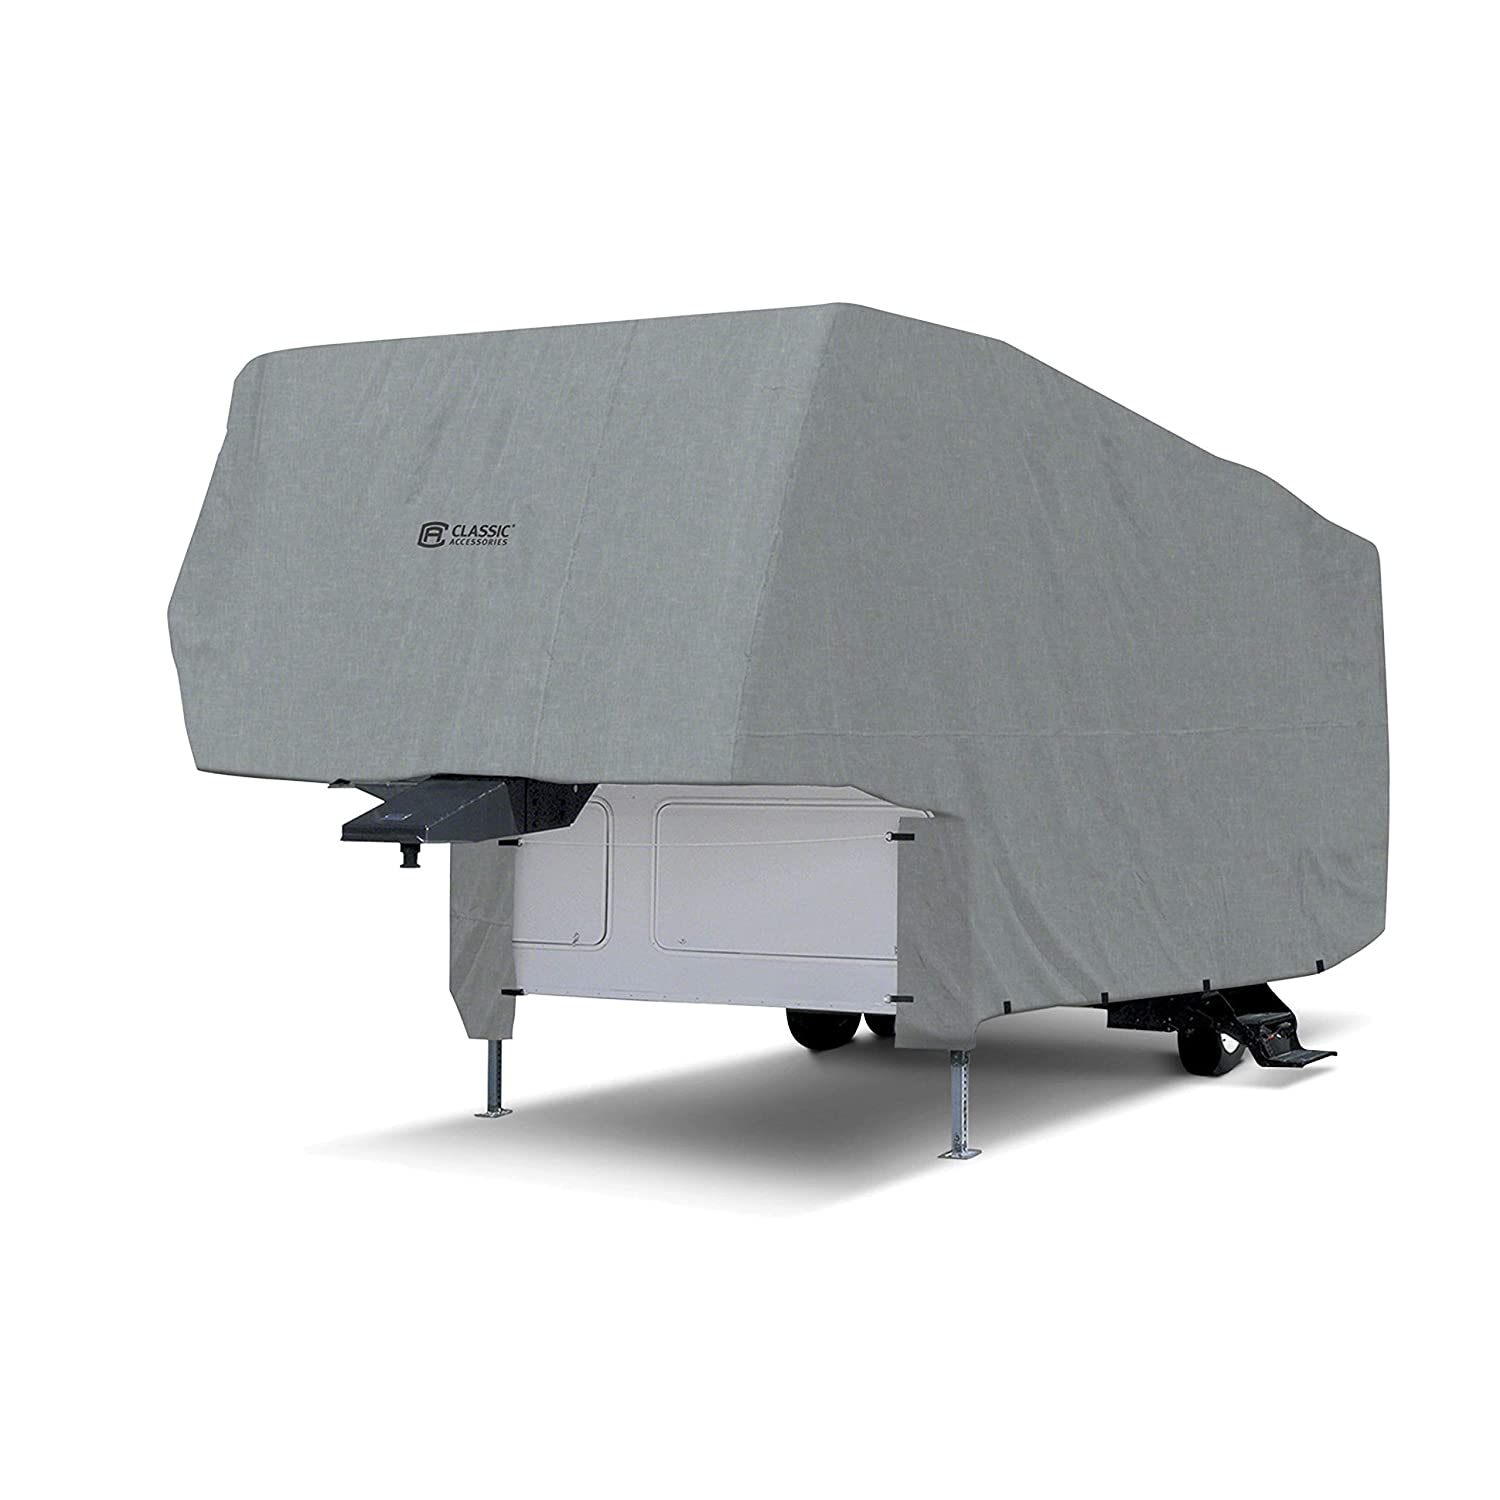 Fits 26-29 RVs Breathable and Water Repellant RV Cover Classic Accessories Overdrive PolyPRO 1 5th Wheel Cover 80-151-161001-00